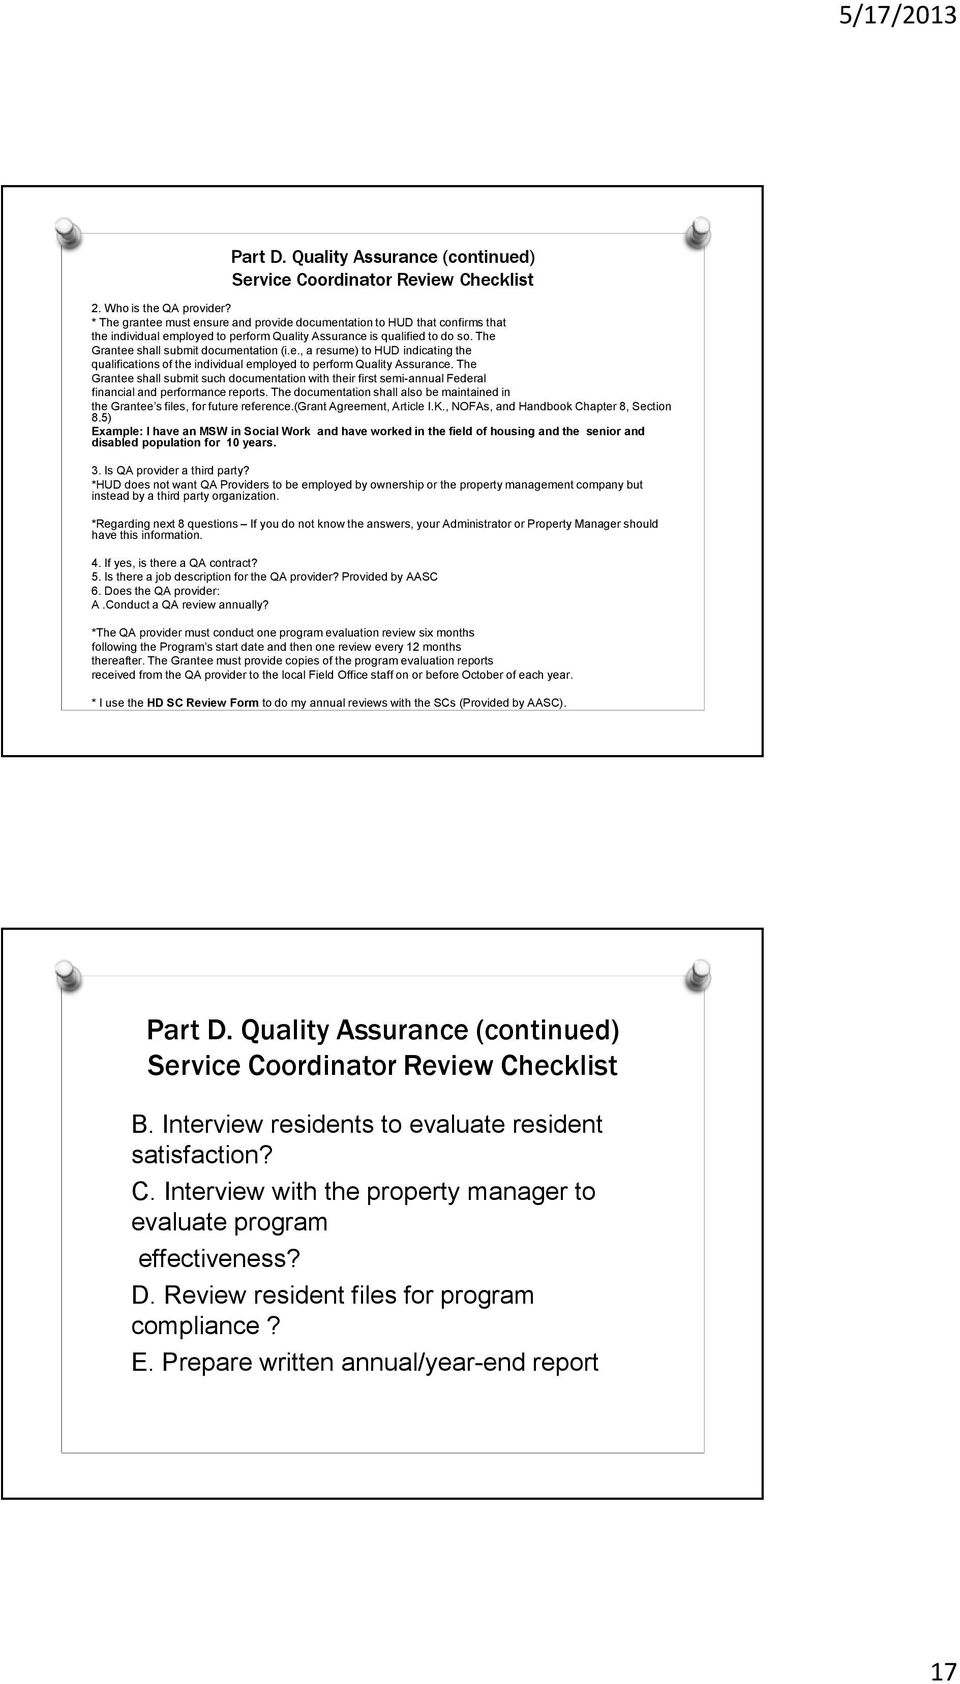 SC 101: UNDERSTANDING WHAT IS EXPECTED FOR A HUD DESK AUDIT AND HOW